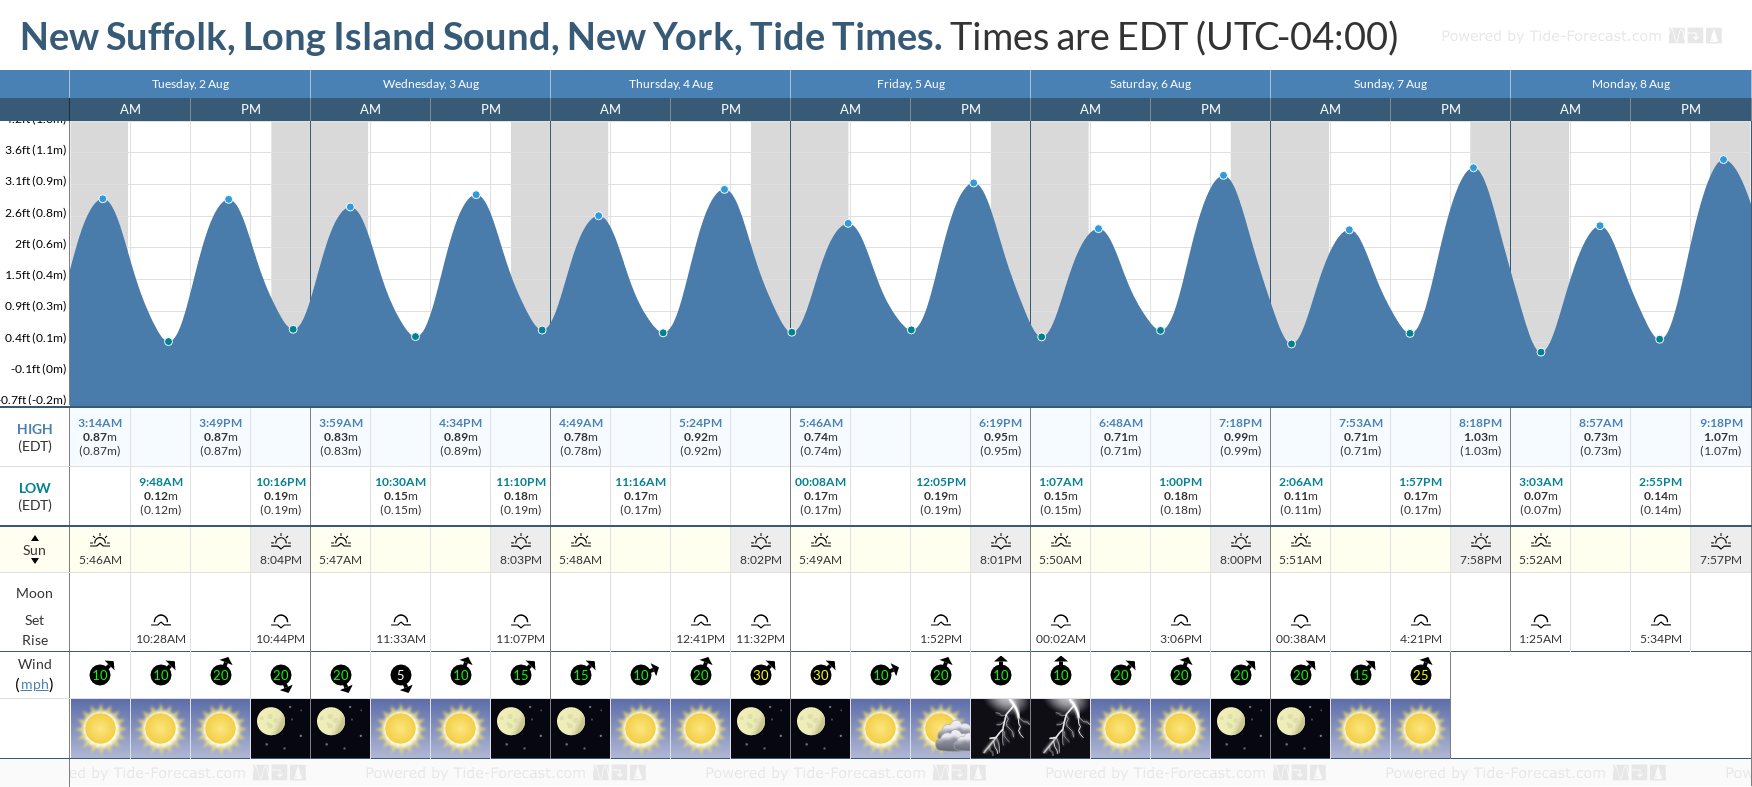 New Suffolk, Long Island Sound, New York Tide Chart including high and low tide tide times for the next 7 days